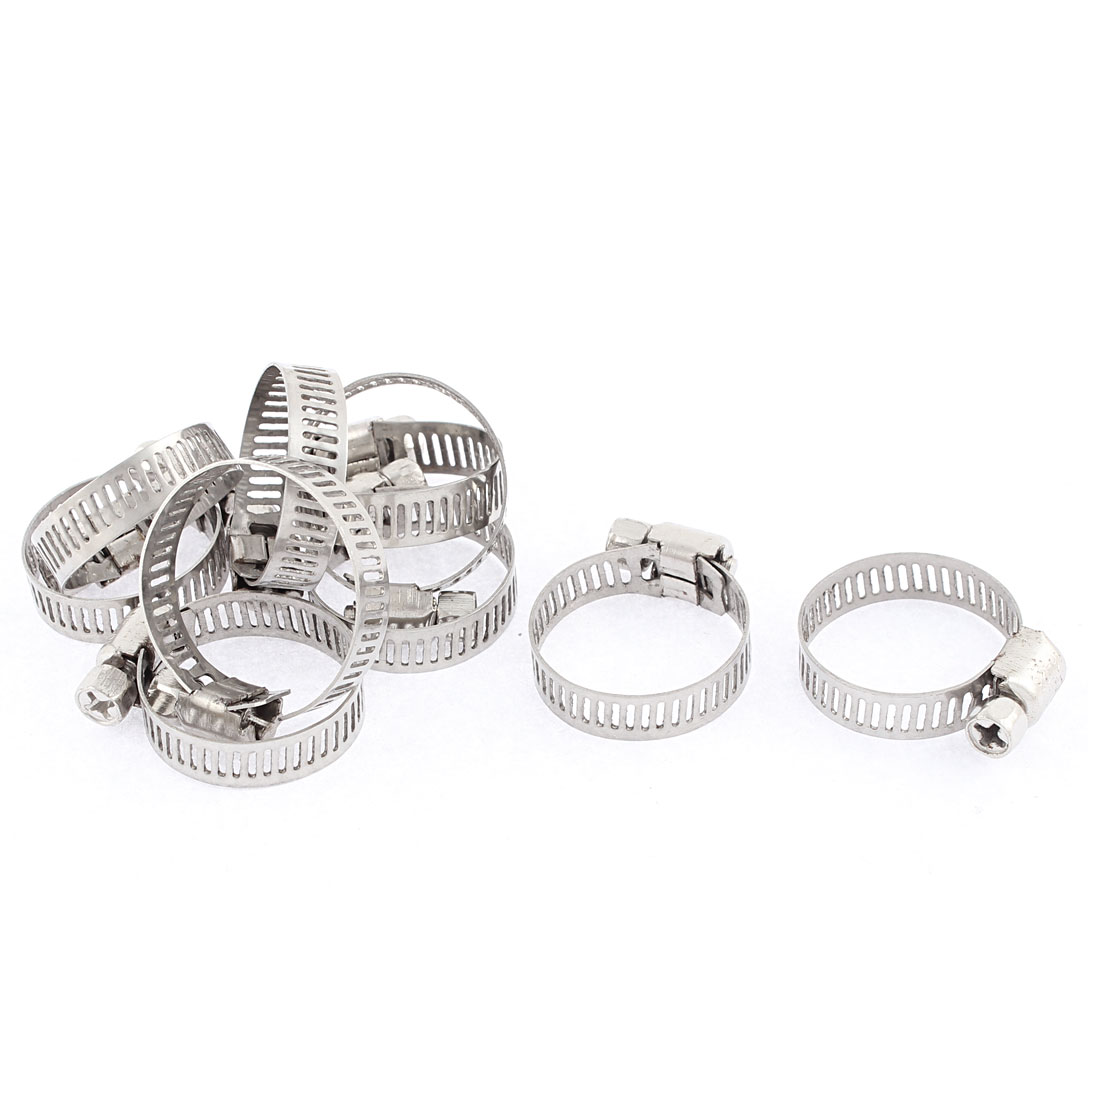 30 Pieces 16-25mm Hose Clamp Worm Gear Hose Pipe Fitting Clamp